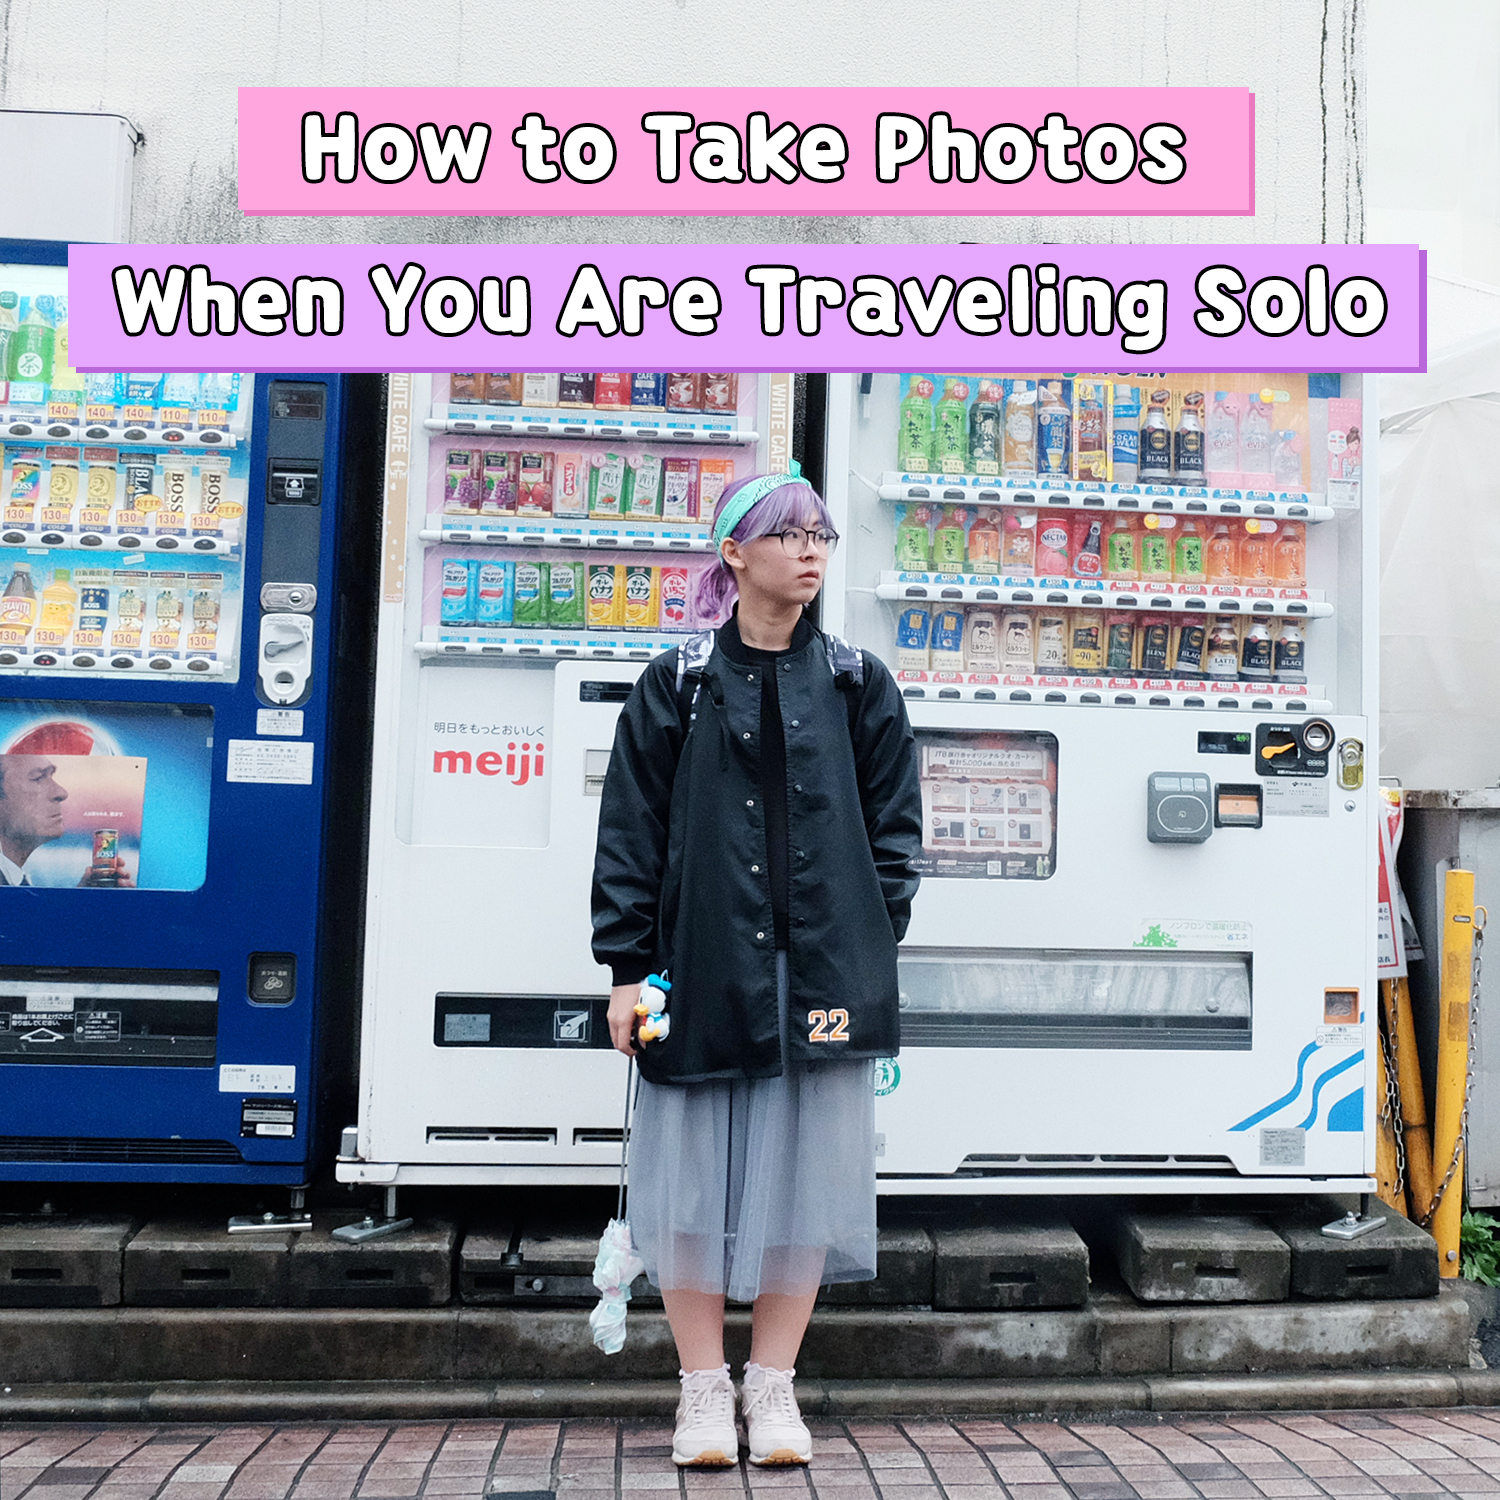 How to Take Photos When Traveling Solo - Pin 2 | www.bigdreamerblog.com